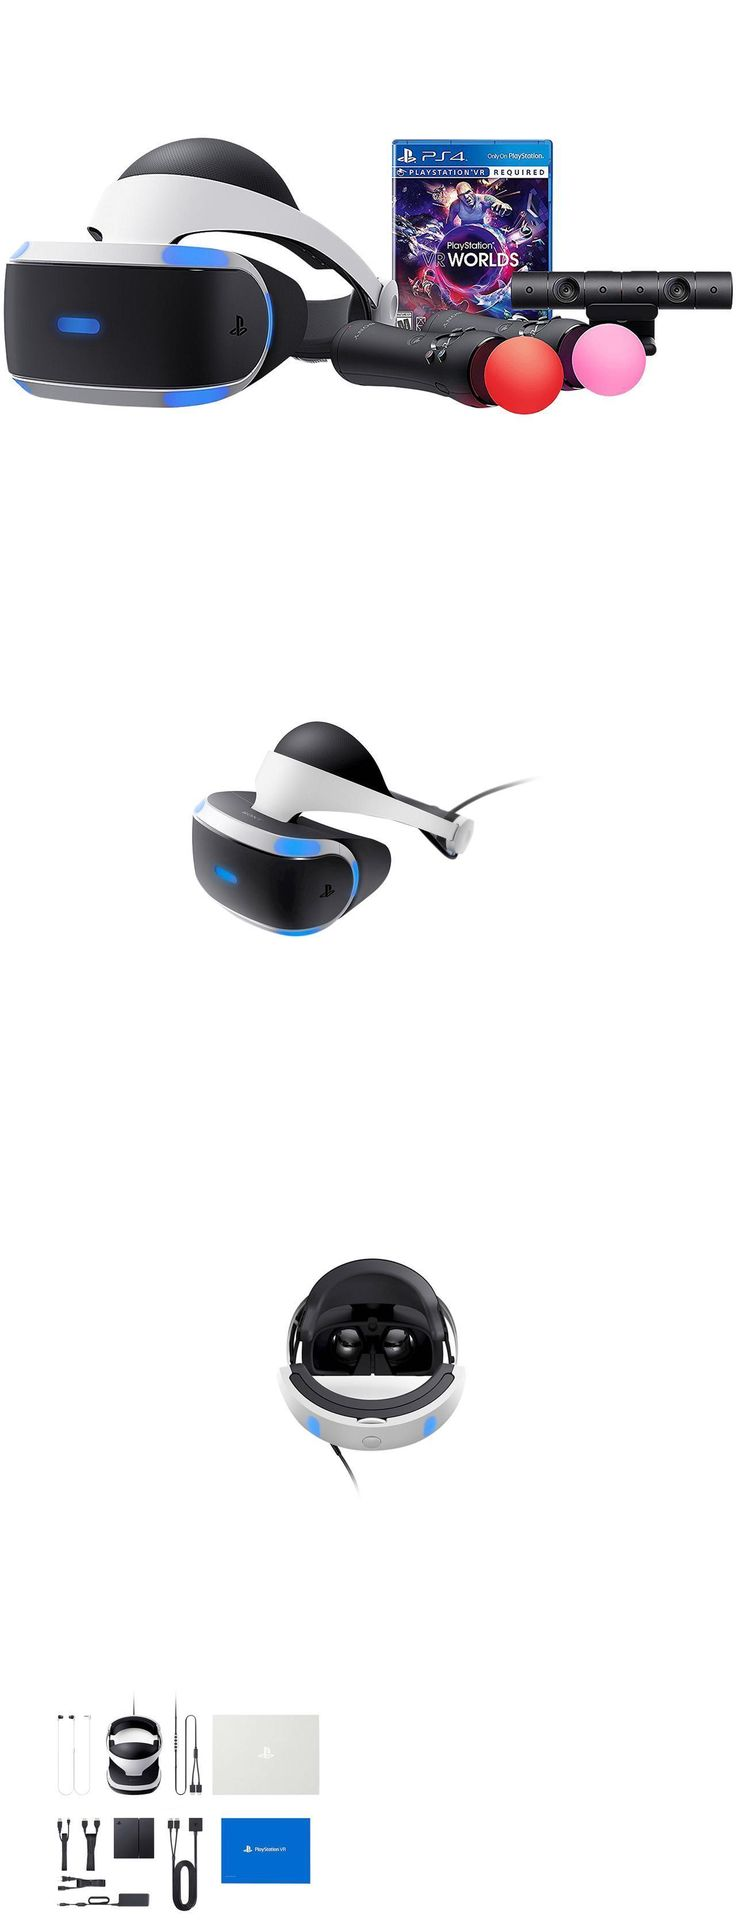 PC and Console VR Headsets: New Playstation 4 Vr Worlds Bundle Virtual Reality Headset For Ps4 Sealed In Box -> BUY IT NOW ONLY: $559.99 on eBay!